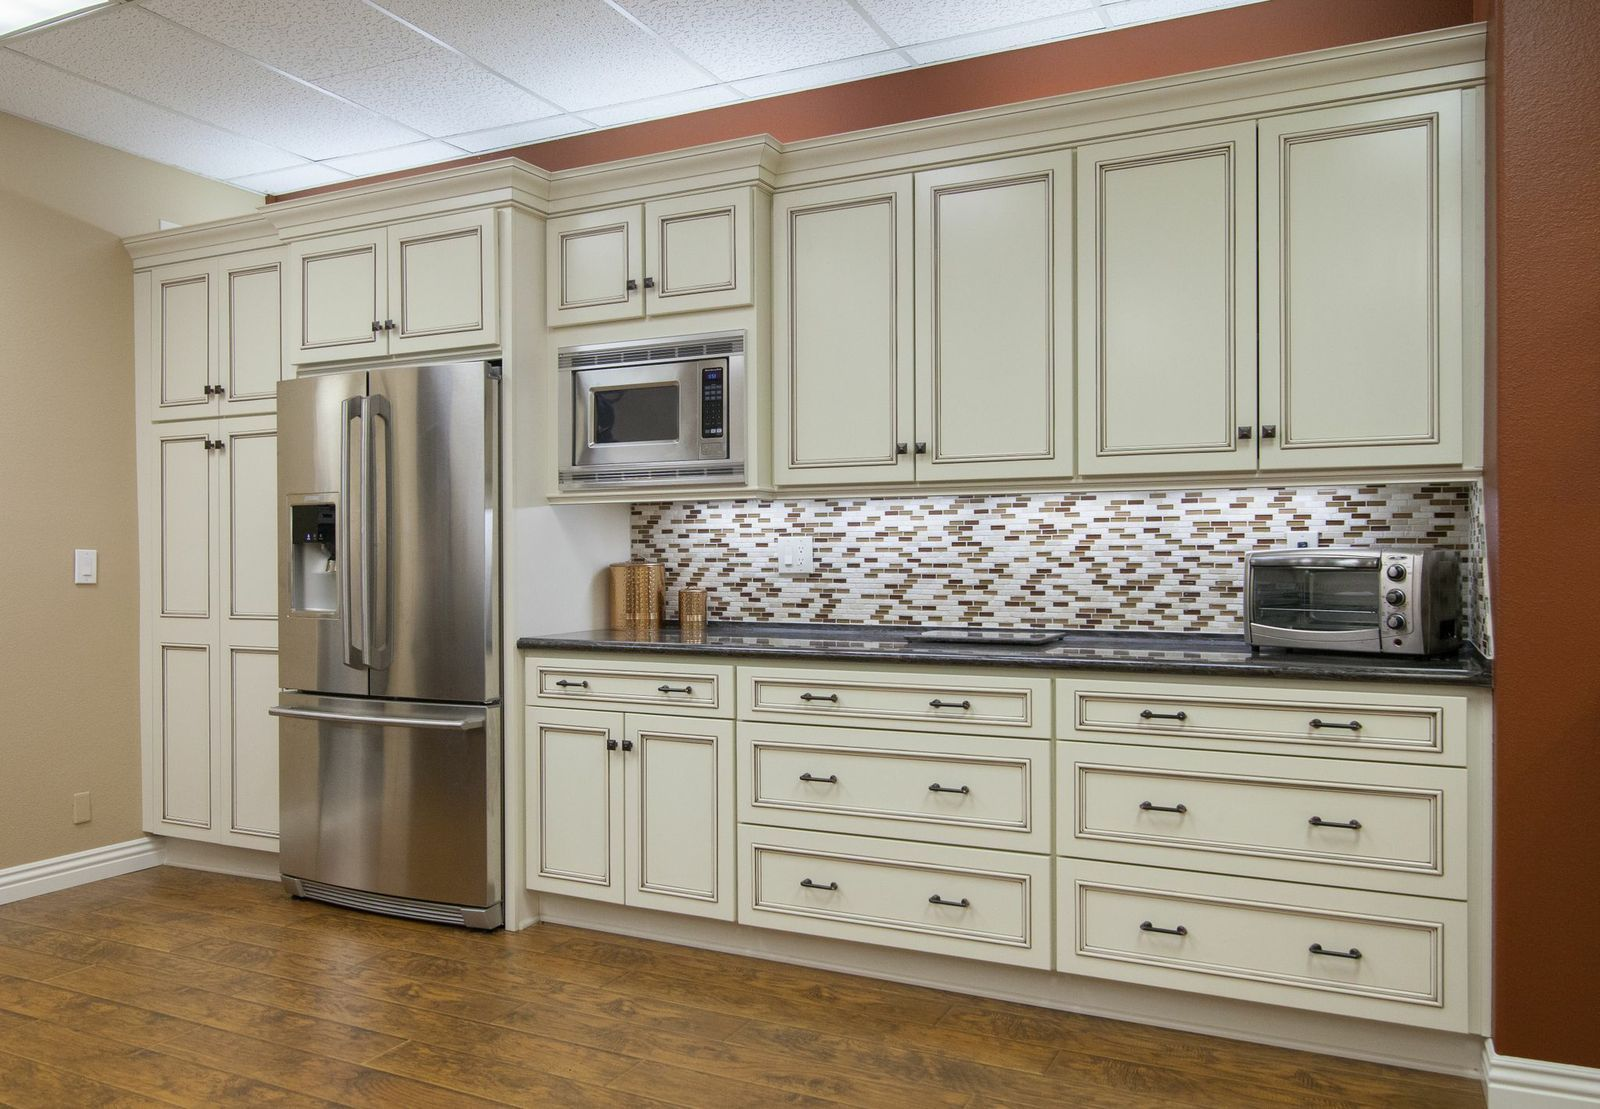 Kitchens Etc Showroom Kitchen Kitchen Cabinets Home Decor